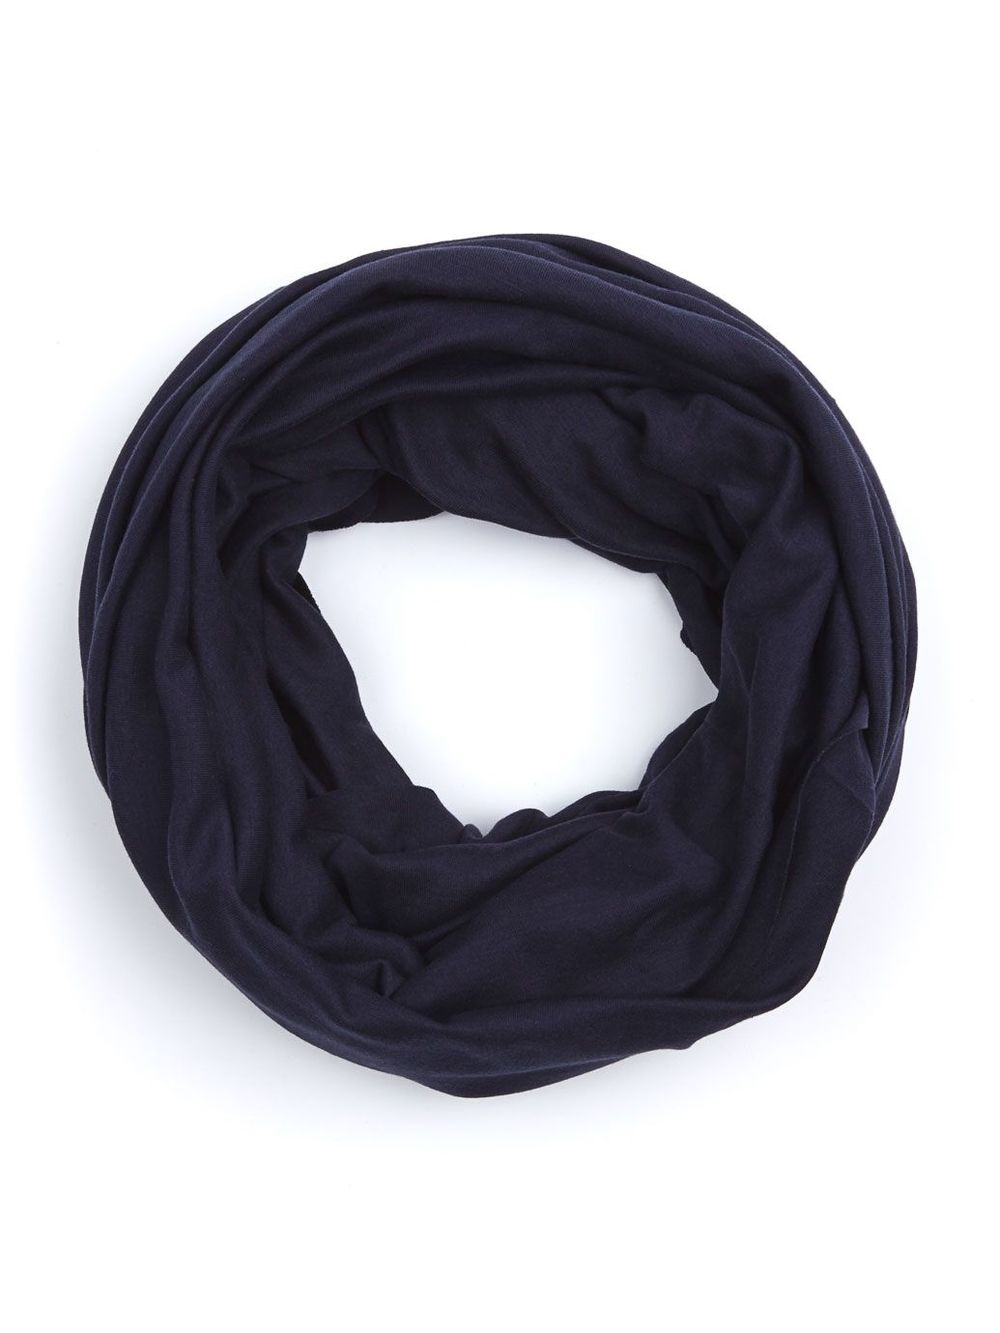 The Unisex Circle Scarf. American Apparel. Available in multiple colors. $28. Some colors on sale.